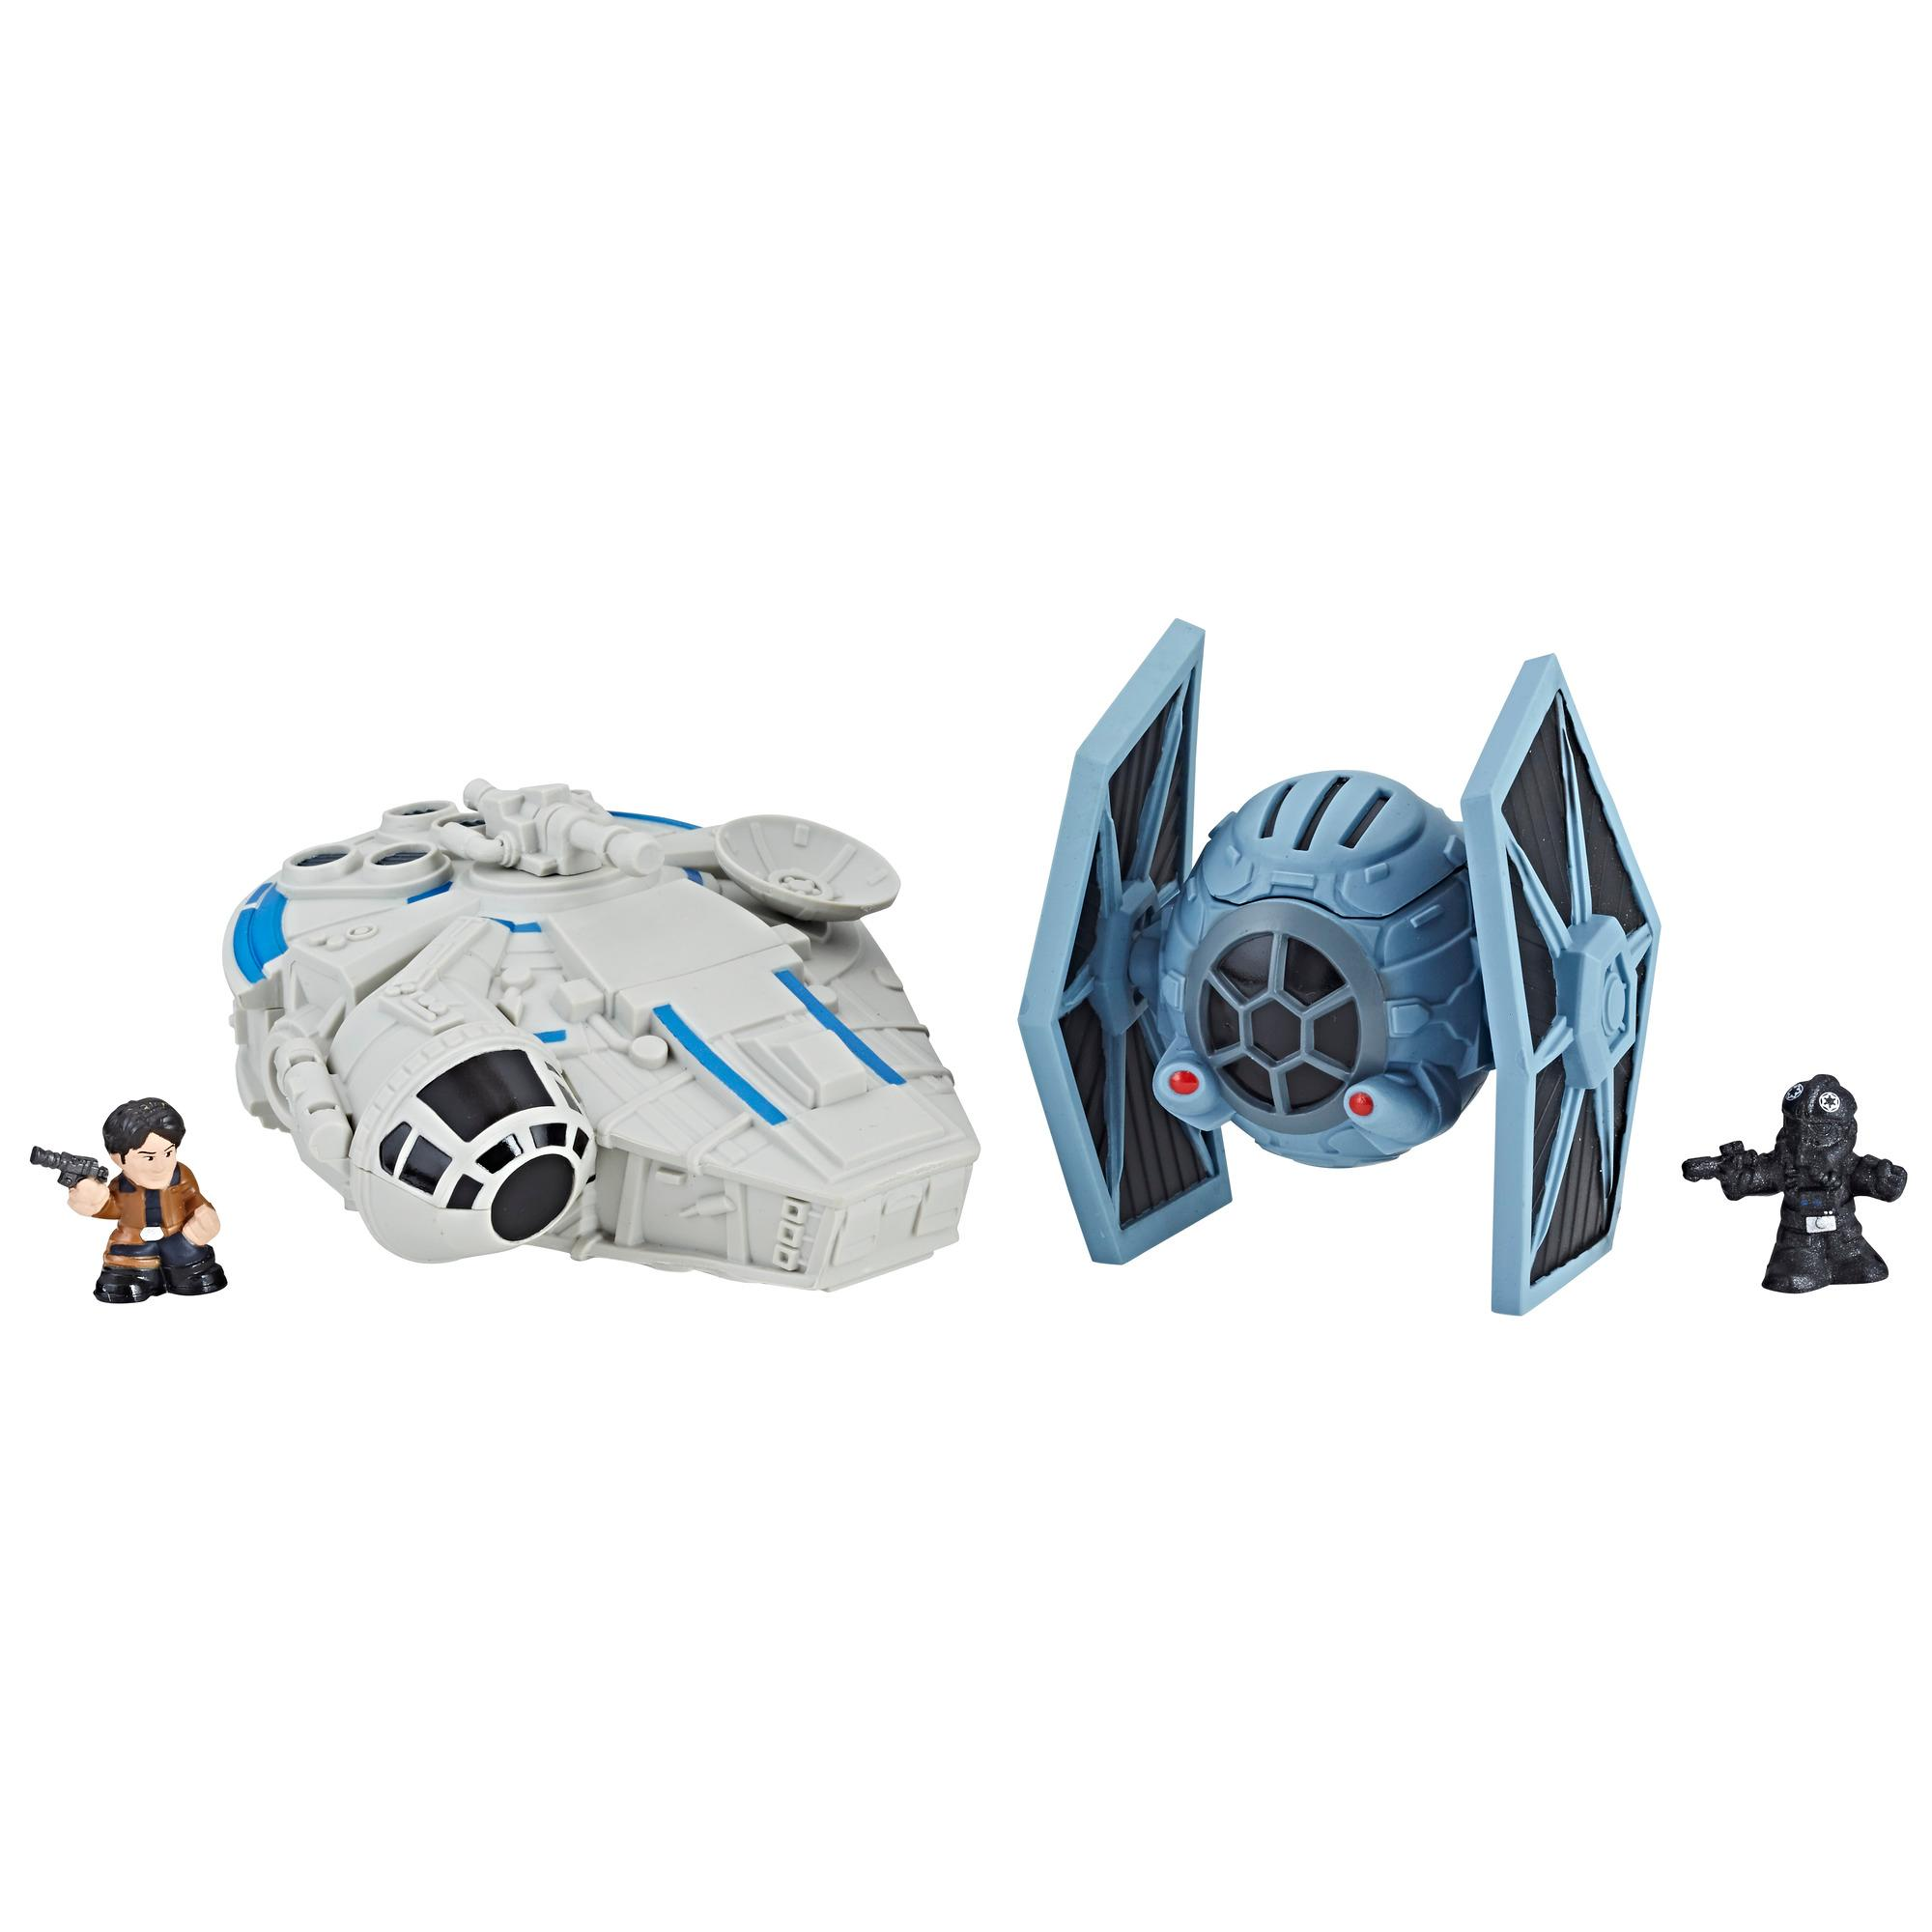 Star Wars Micro Force Millennium Falcon vs. TIE Fighter Vehicle 2-Pack